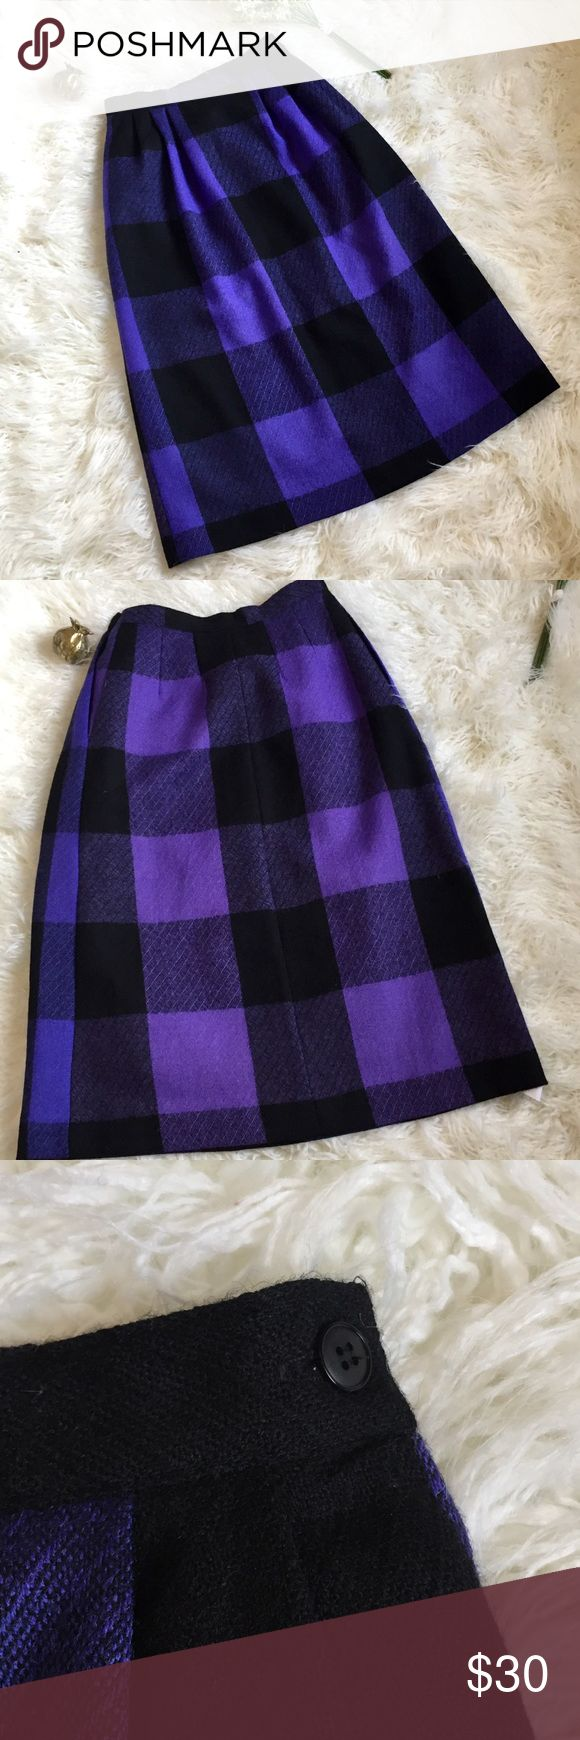 "Vintage purple/black plaid wool skirt Vintage plaid skirt. Violet purple and black plaid 100% wool. Thin diagonal stripes on some parts of the purple. Pair with your favorite blouse to create he perfect vintage look ✨ Button closure on side. In excellent condition. Size tag missing but waist measures approx 13.5"" (roughly size 8) and 30"" long. Vintage Skirts"